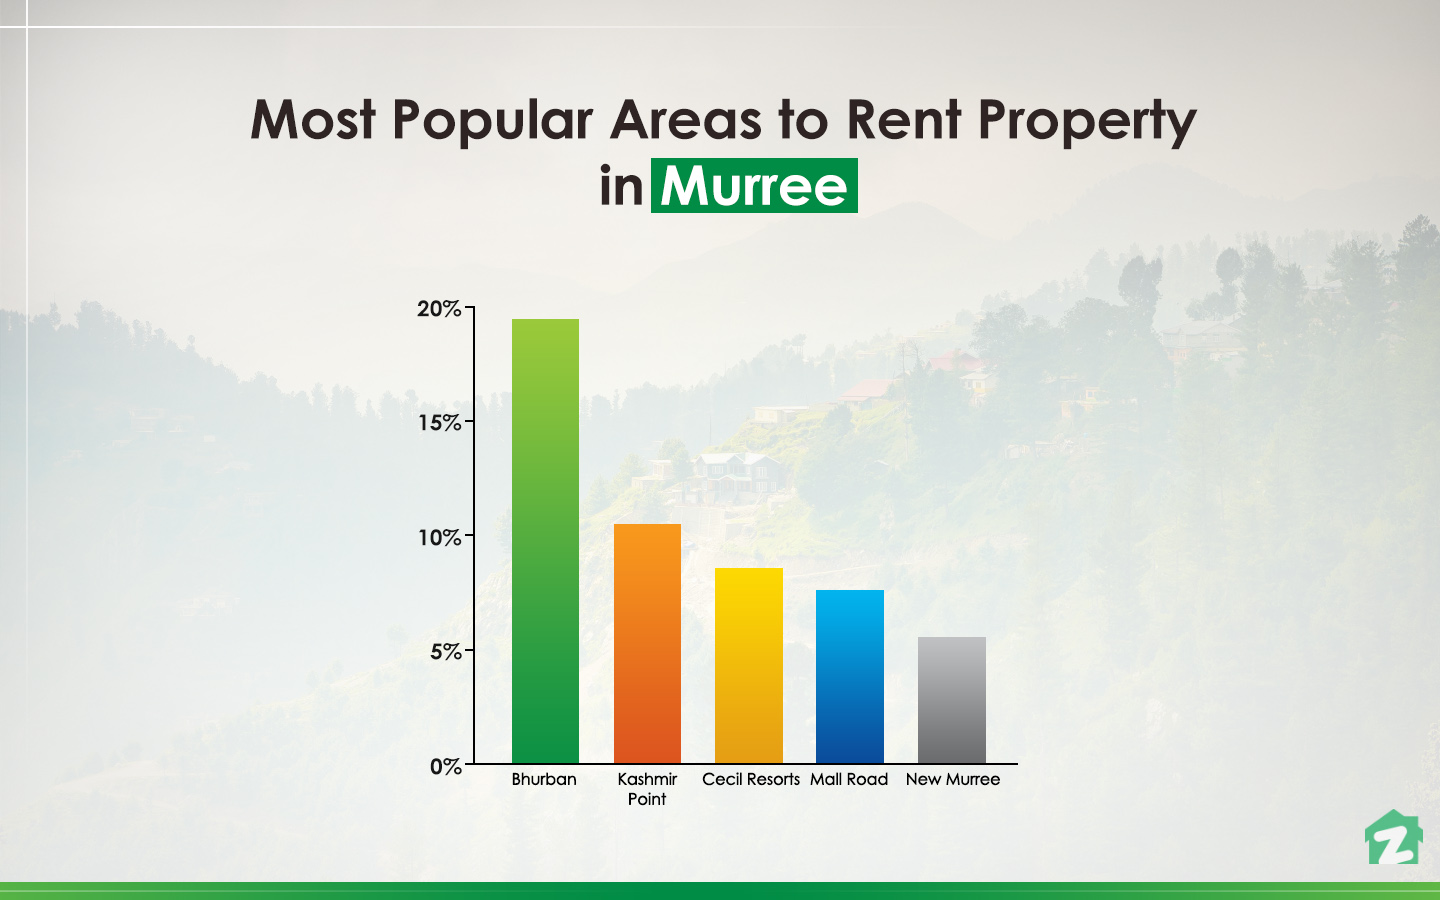 Most popular areas to rent property in Murree